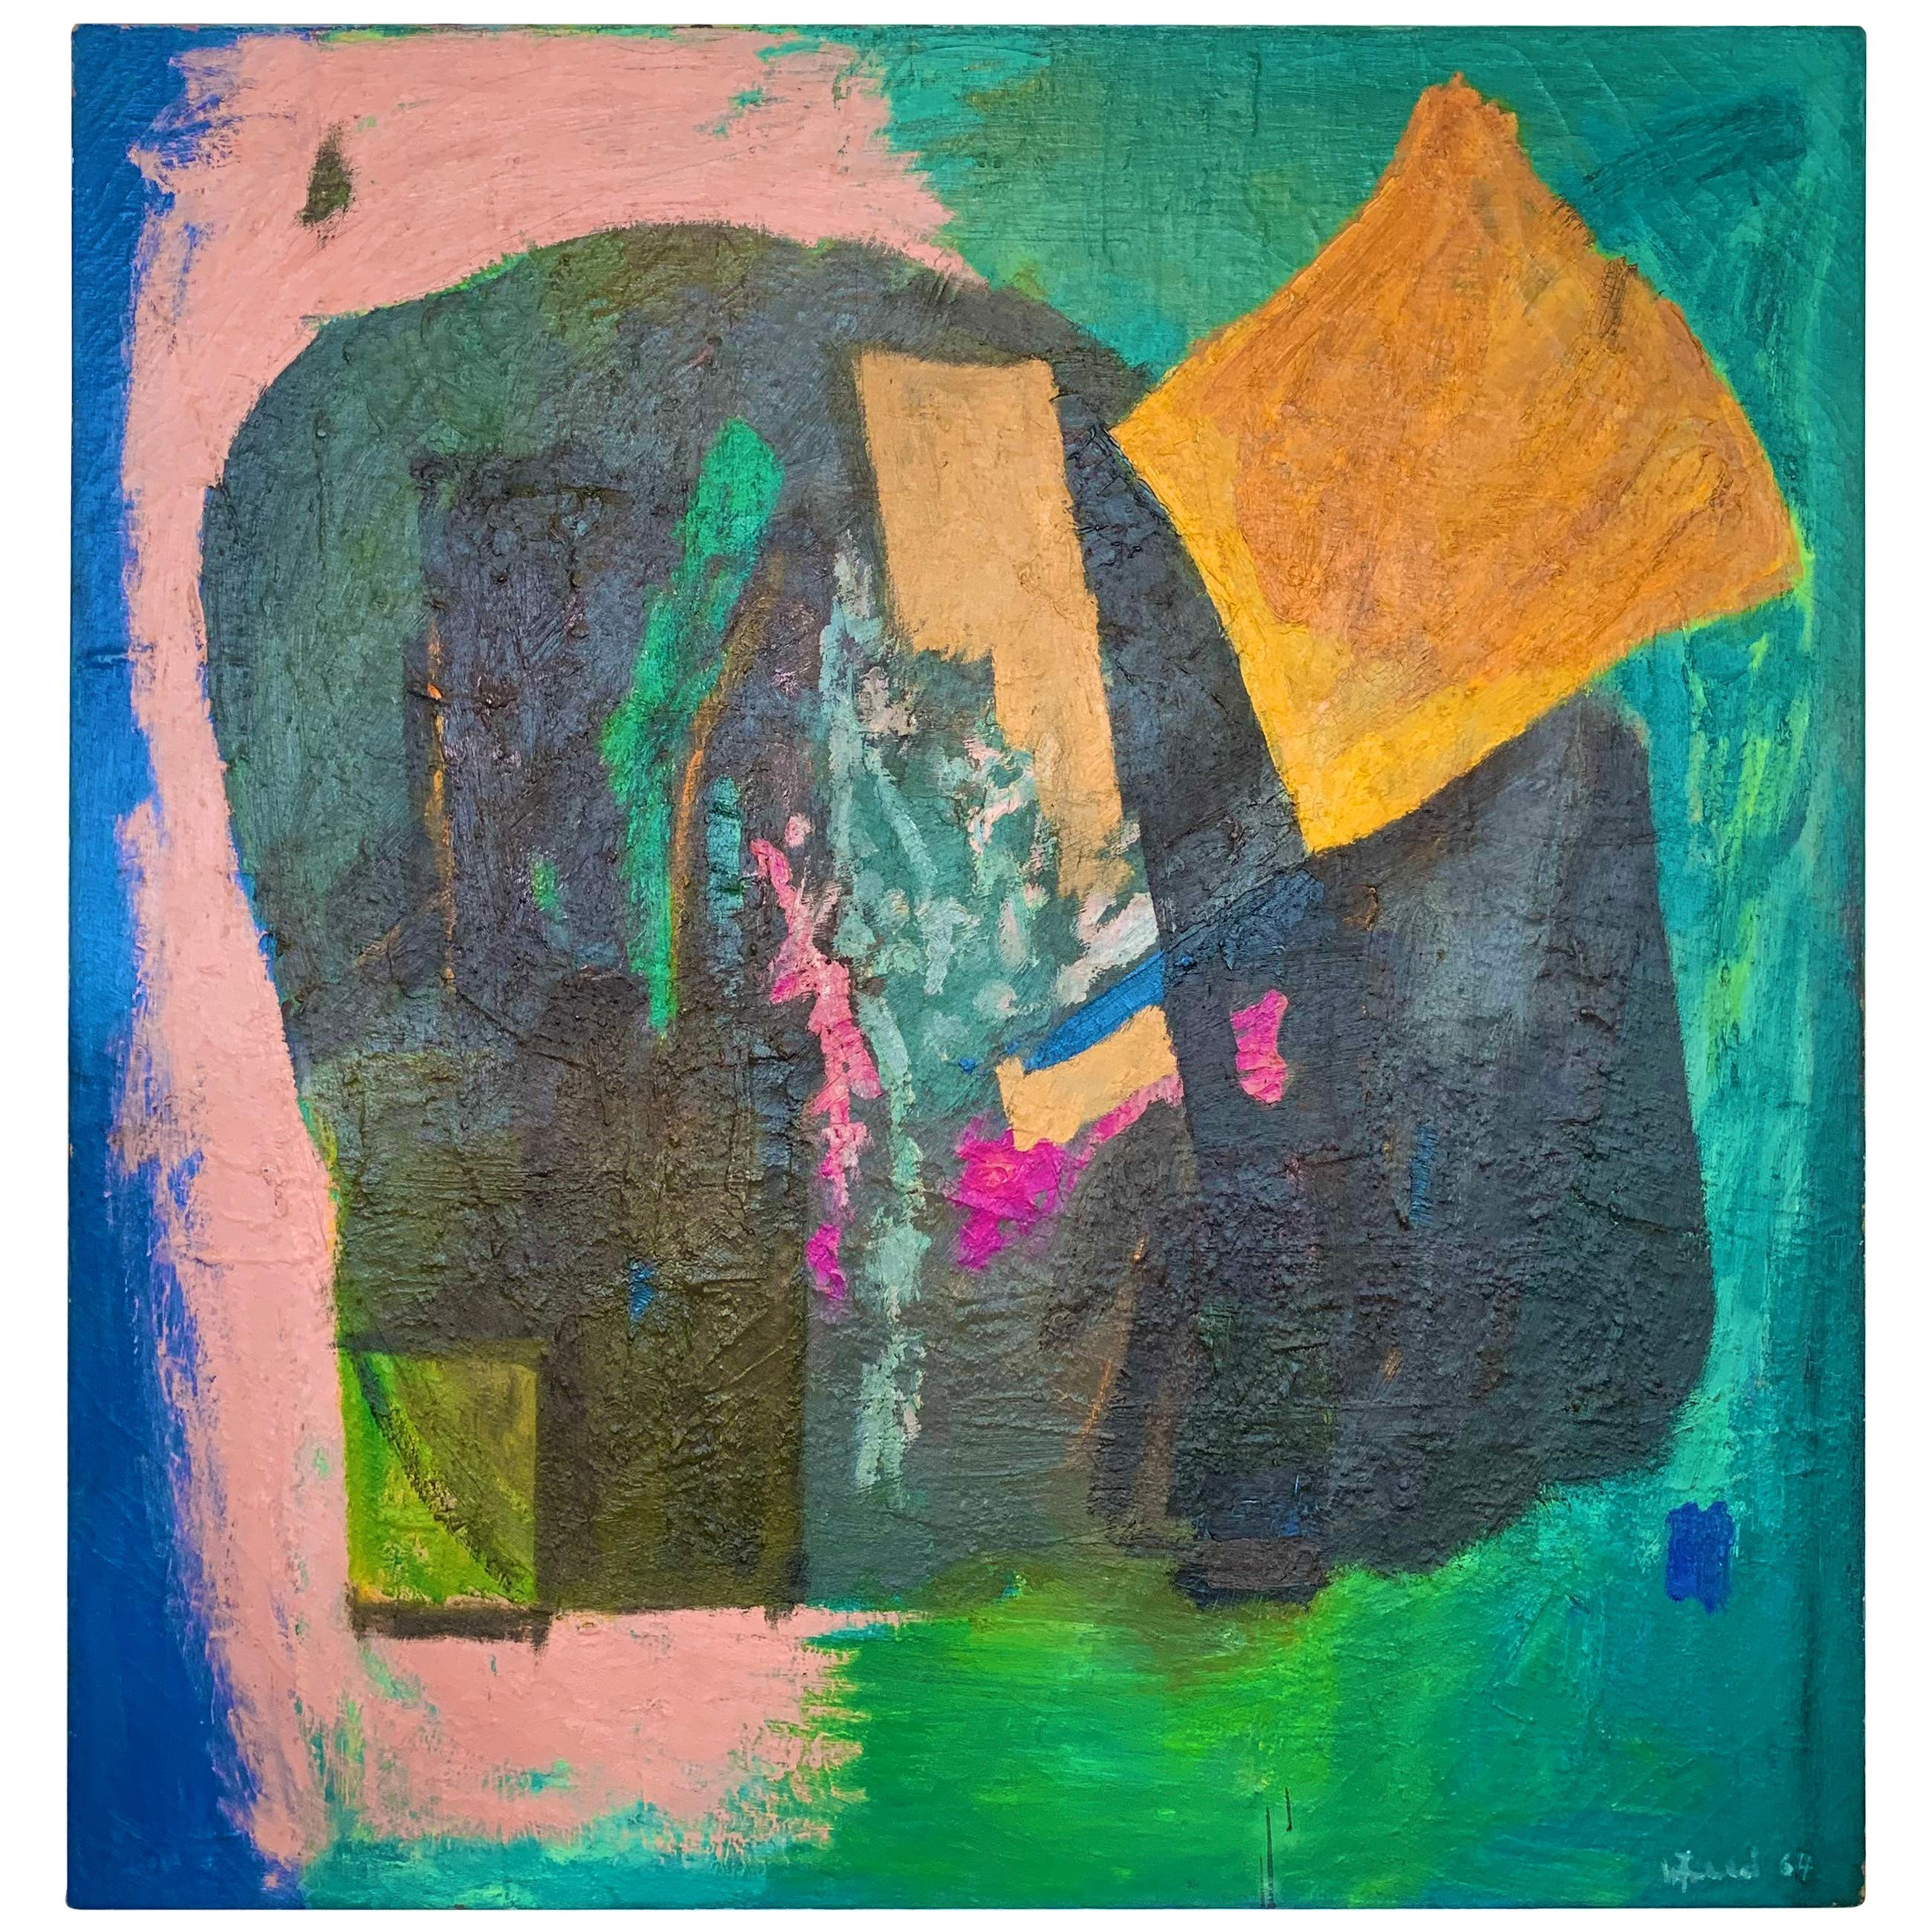 Large Abstract Painting by William Freed